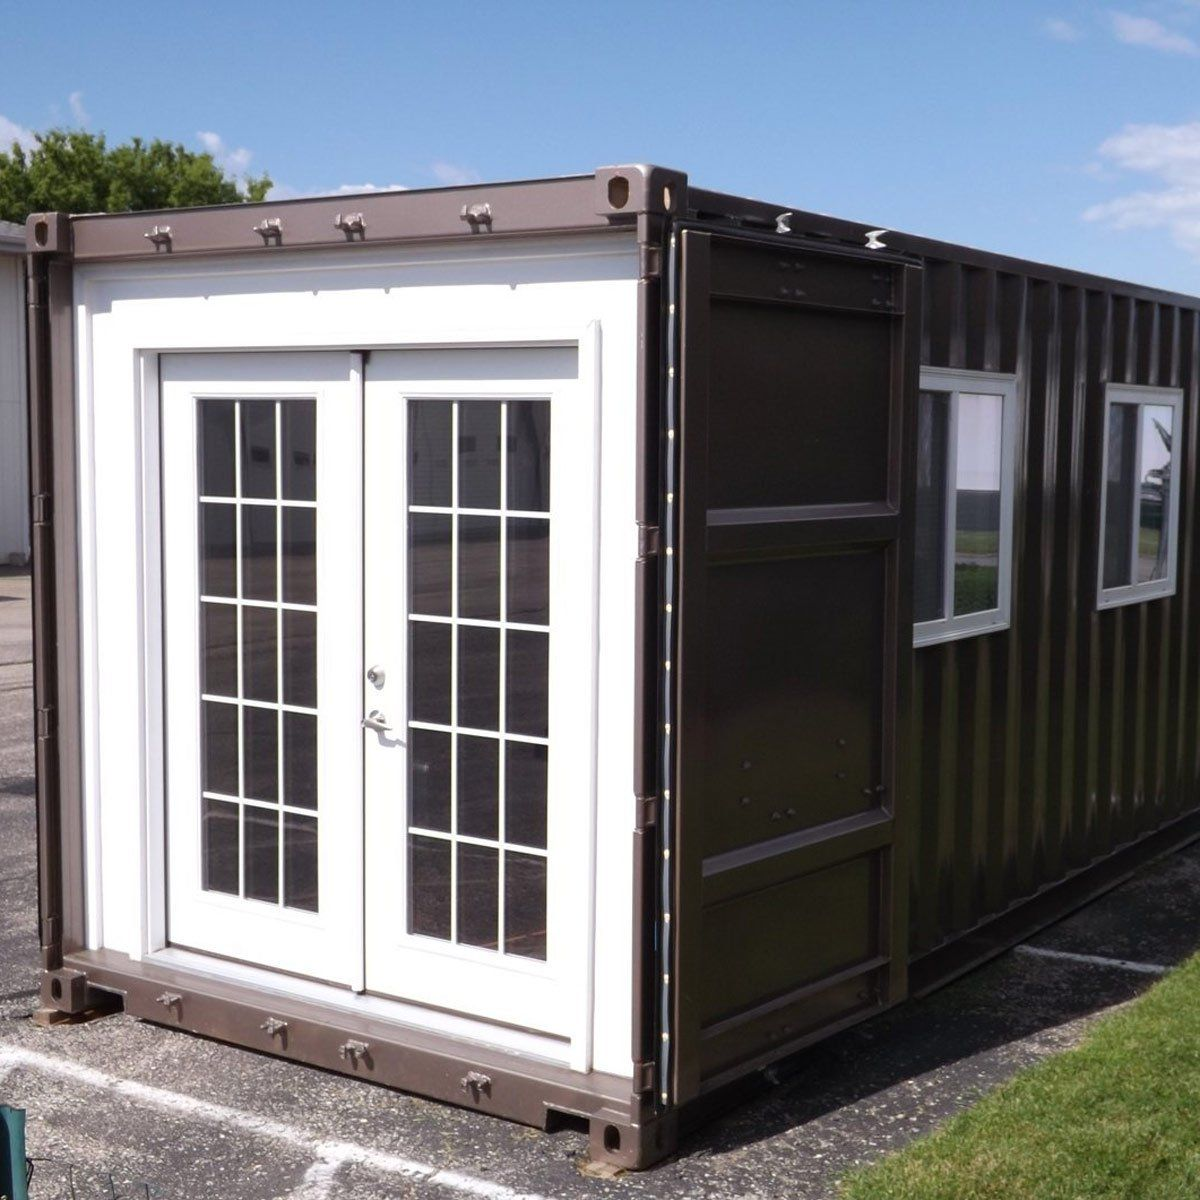 Kleine Container Amazon Now Sells Shipping Container Tiny Homes Konténerház